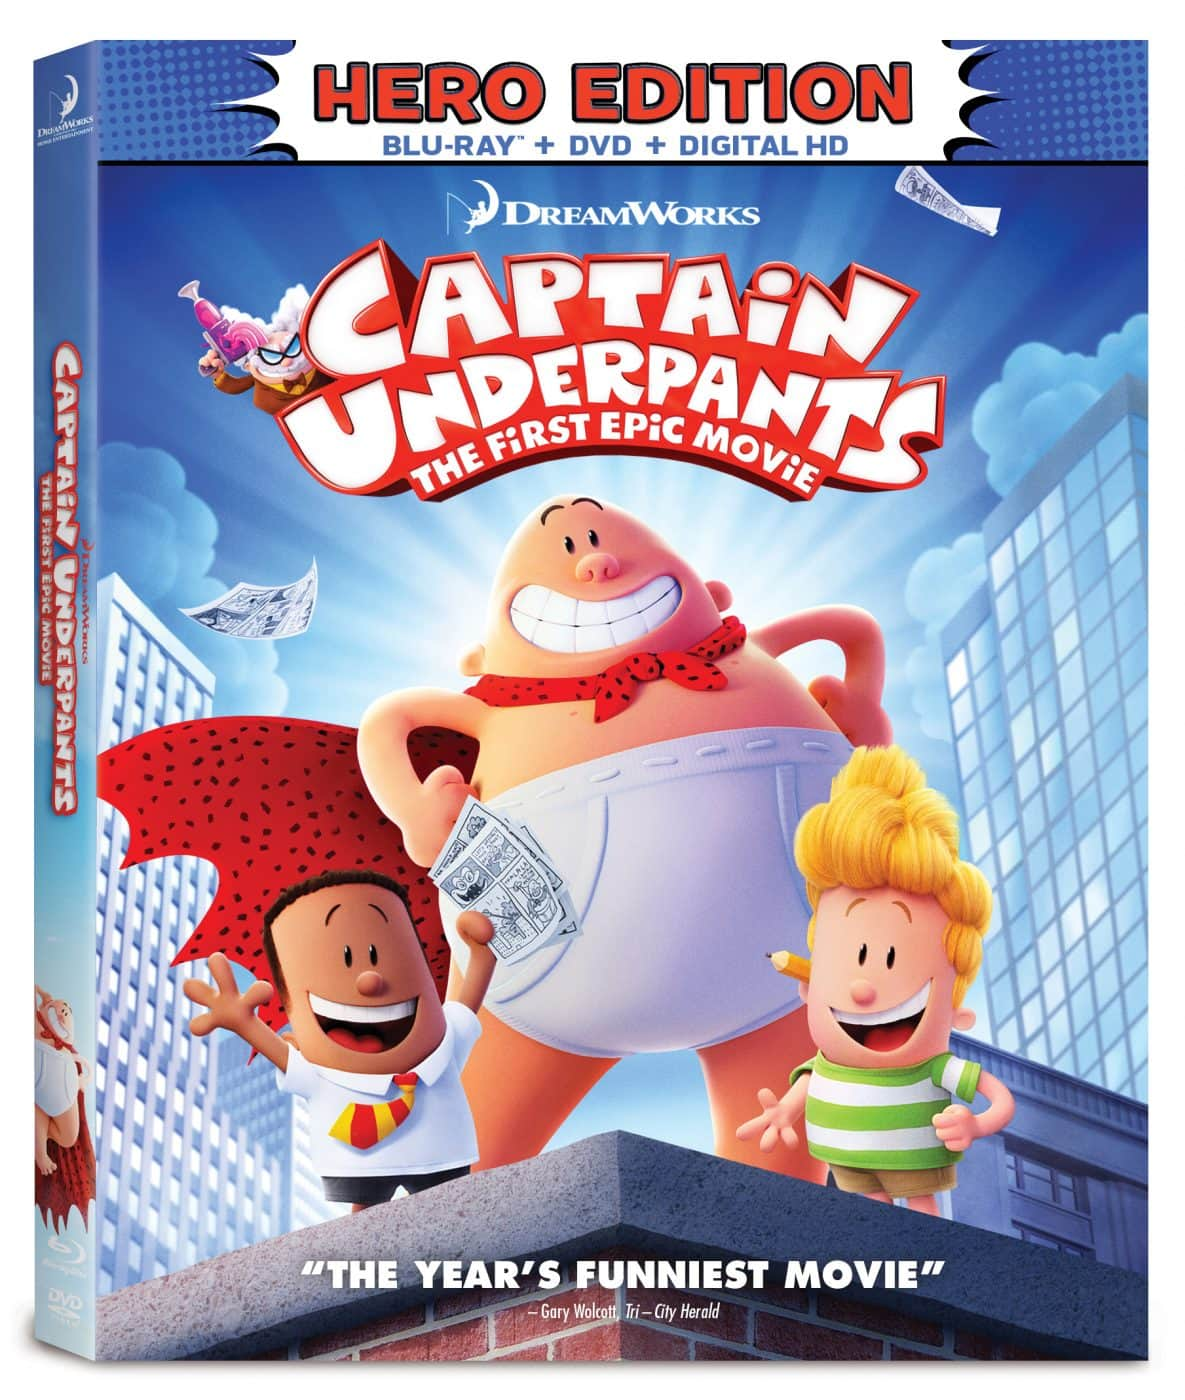 Captain Underpants Blu-ray + DVD